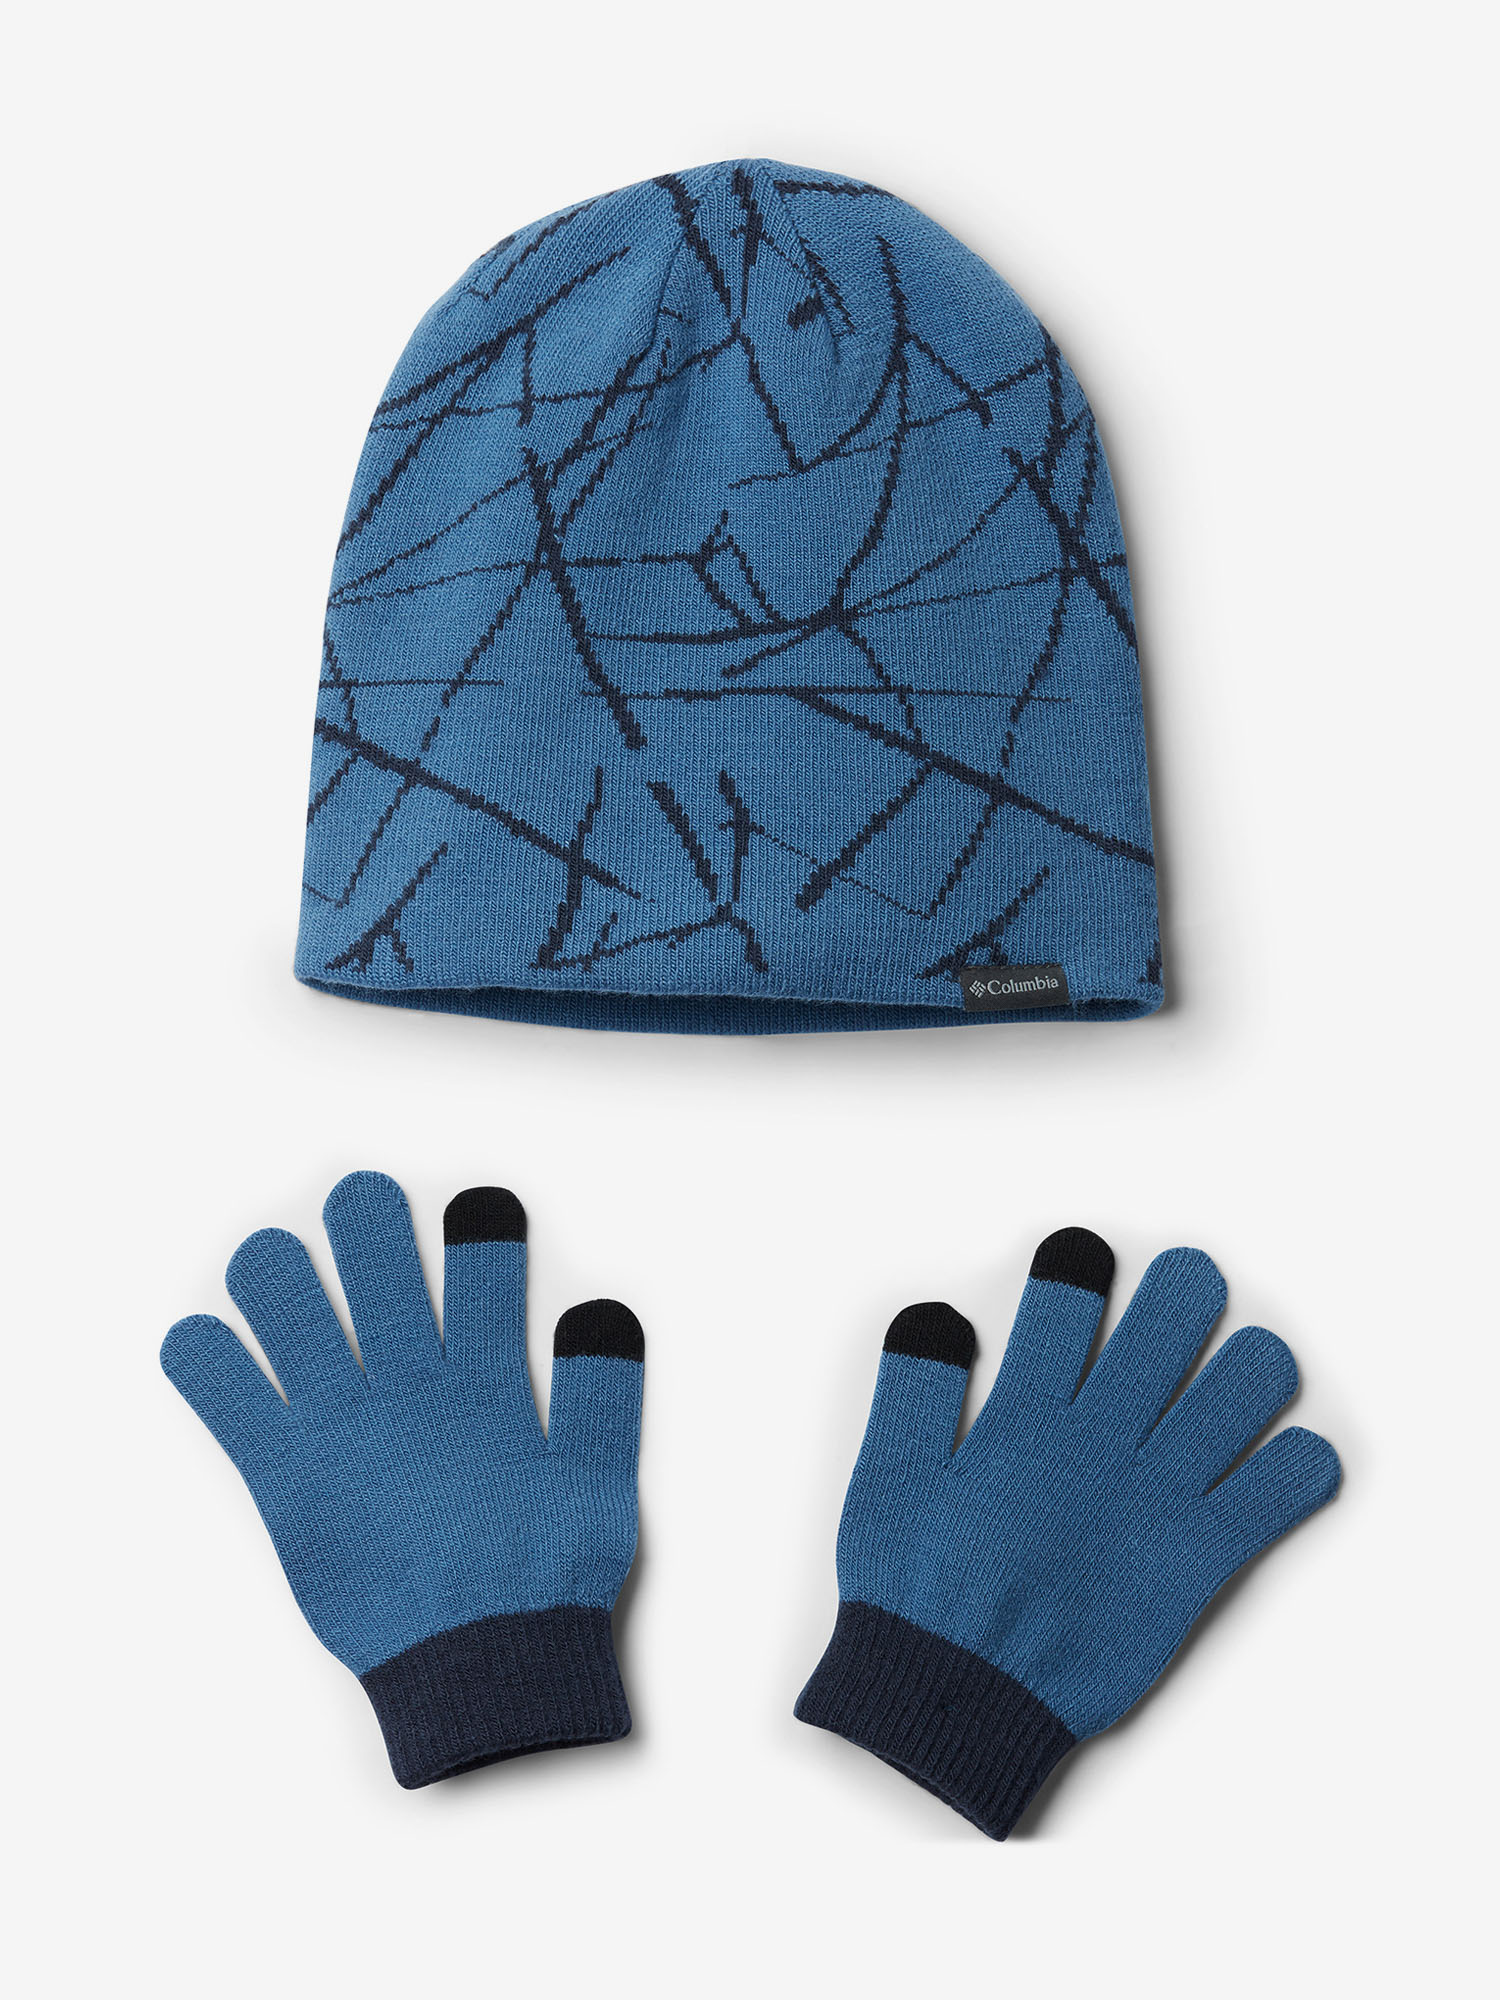 Čepice a rukavice Columbia Youth Hat and Glove Set II (1)